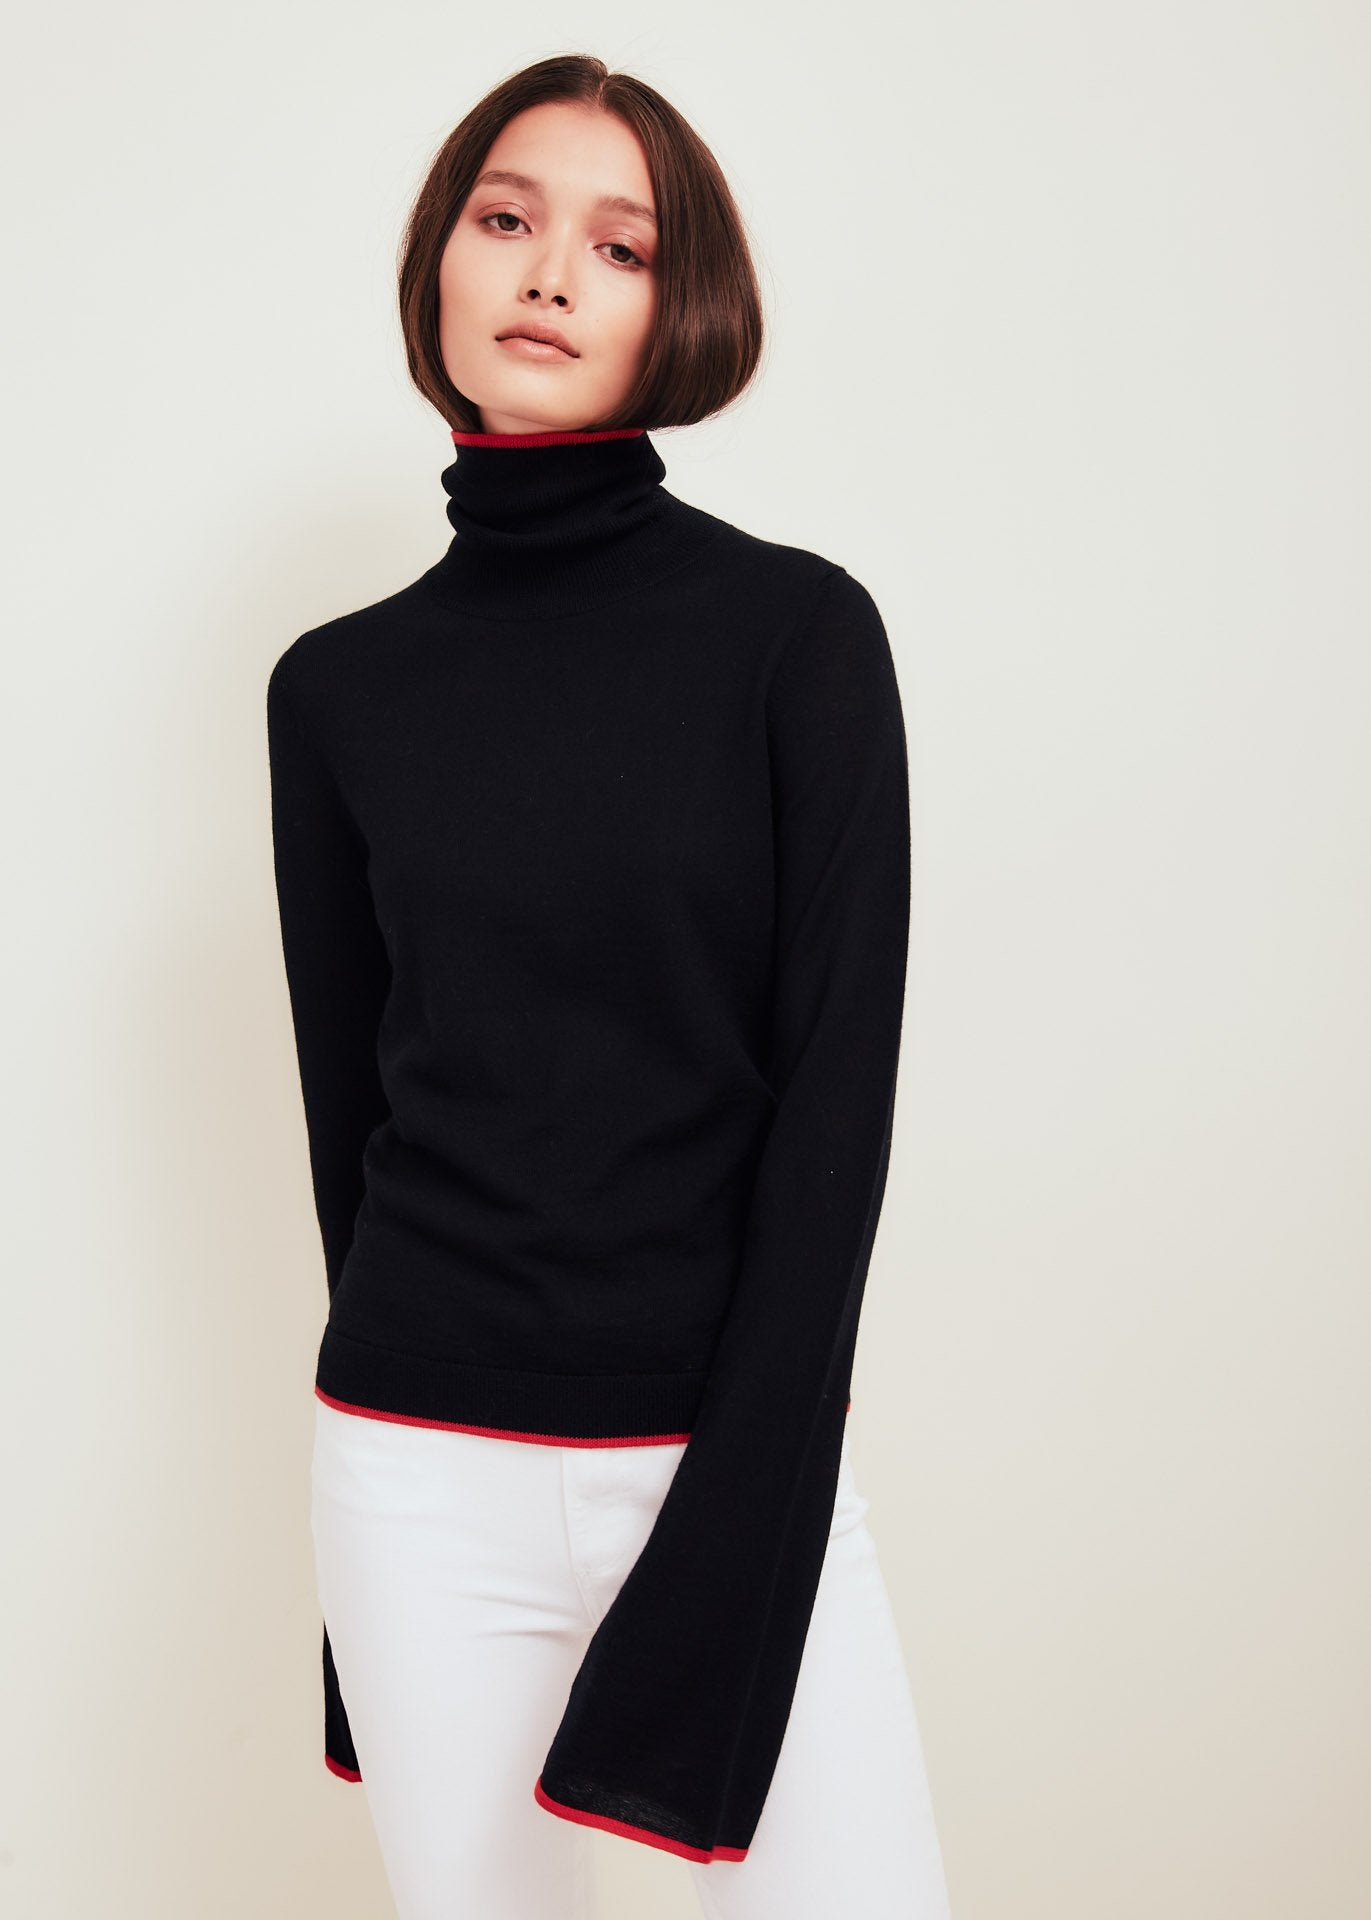 Black Fine Merino Wool Sweater With Red Tipping - Paloma